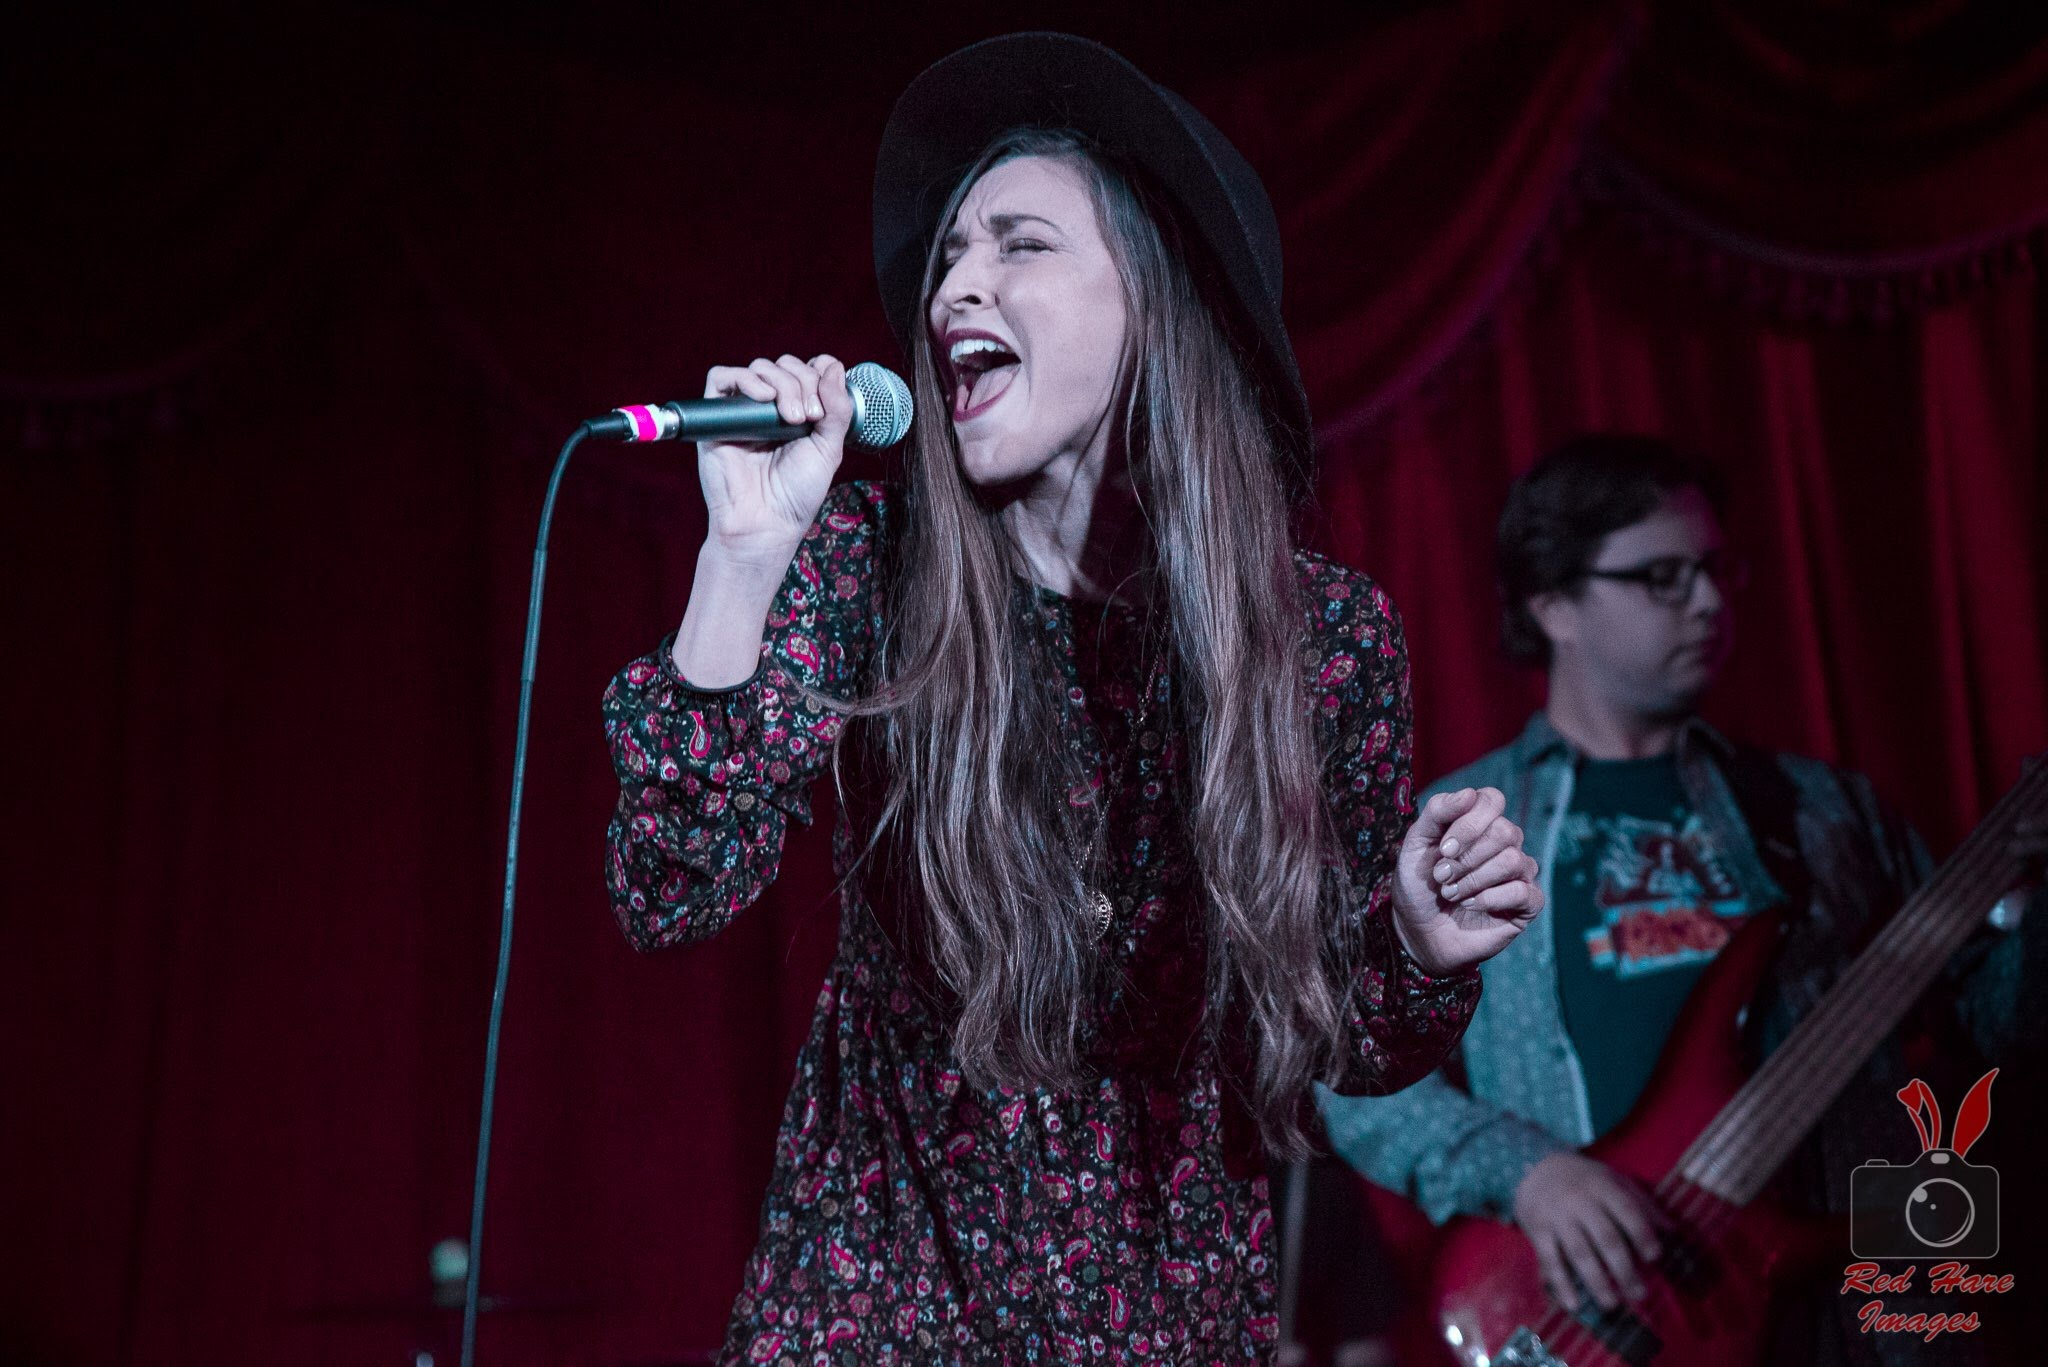 kaylee-robin-singing-singer-laced-in-blue-long-beach-alexs-bar-hat-microphone-belt-red-hare-images-b